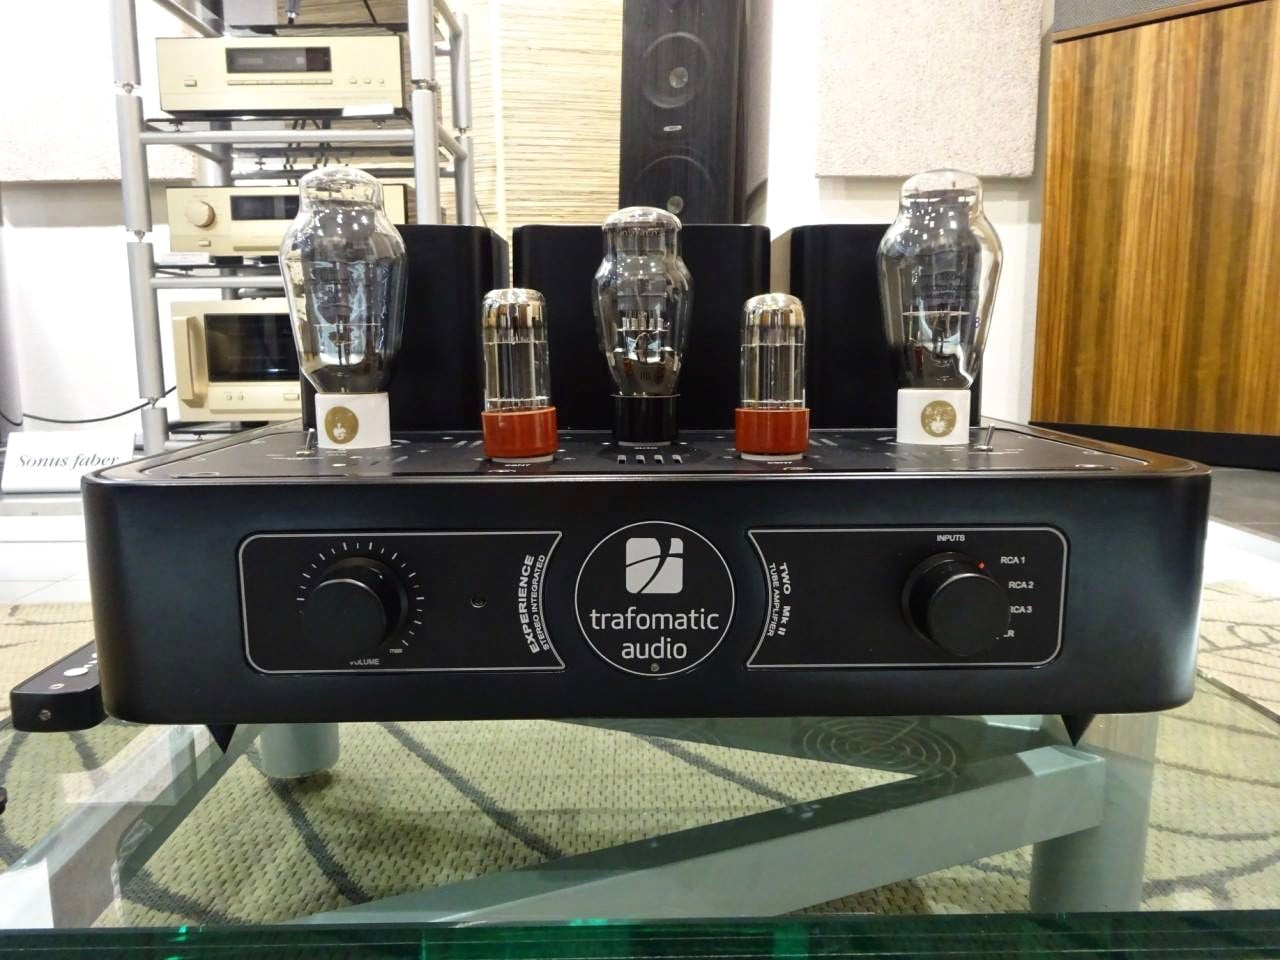 trafomatic audio Experience Two Mk2 review matej isak 2016 2017 mono and stereo high end audio review test 5